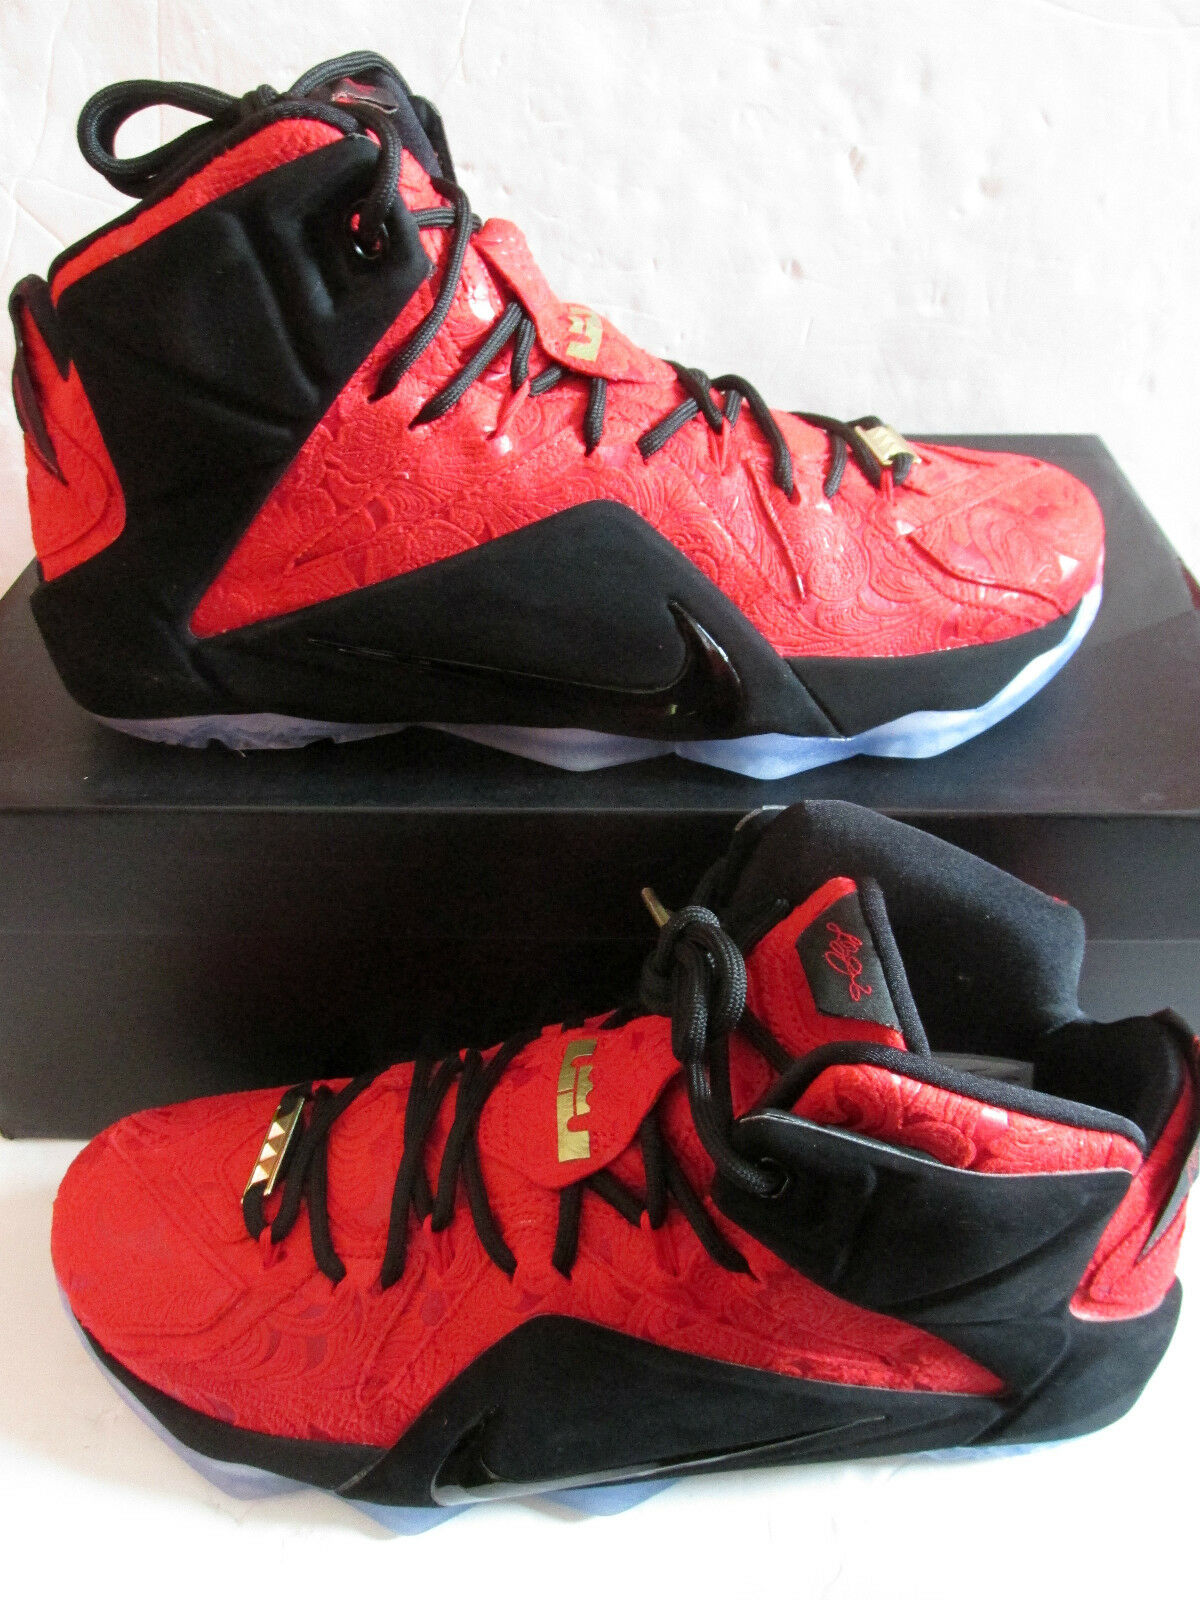 Nike lebron XII EXT mens hi top trainers 748861 600 sneakers shoes